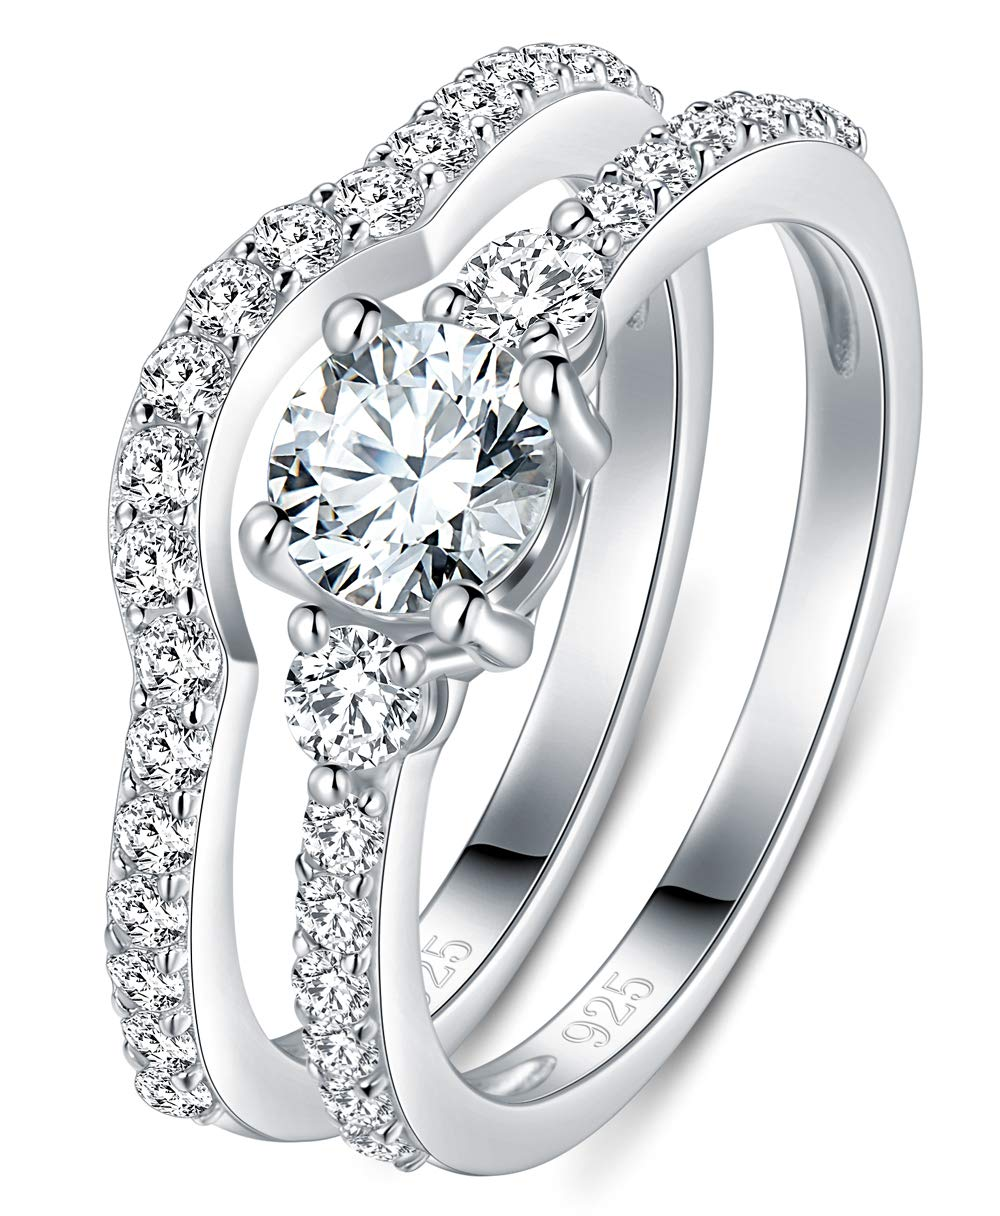 BORUO 925 Sterling Silver Ring Cubic Zirconia CZ 2pc Wedding Band Stackable Ring Set 4mm Size 4-12